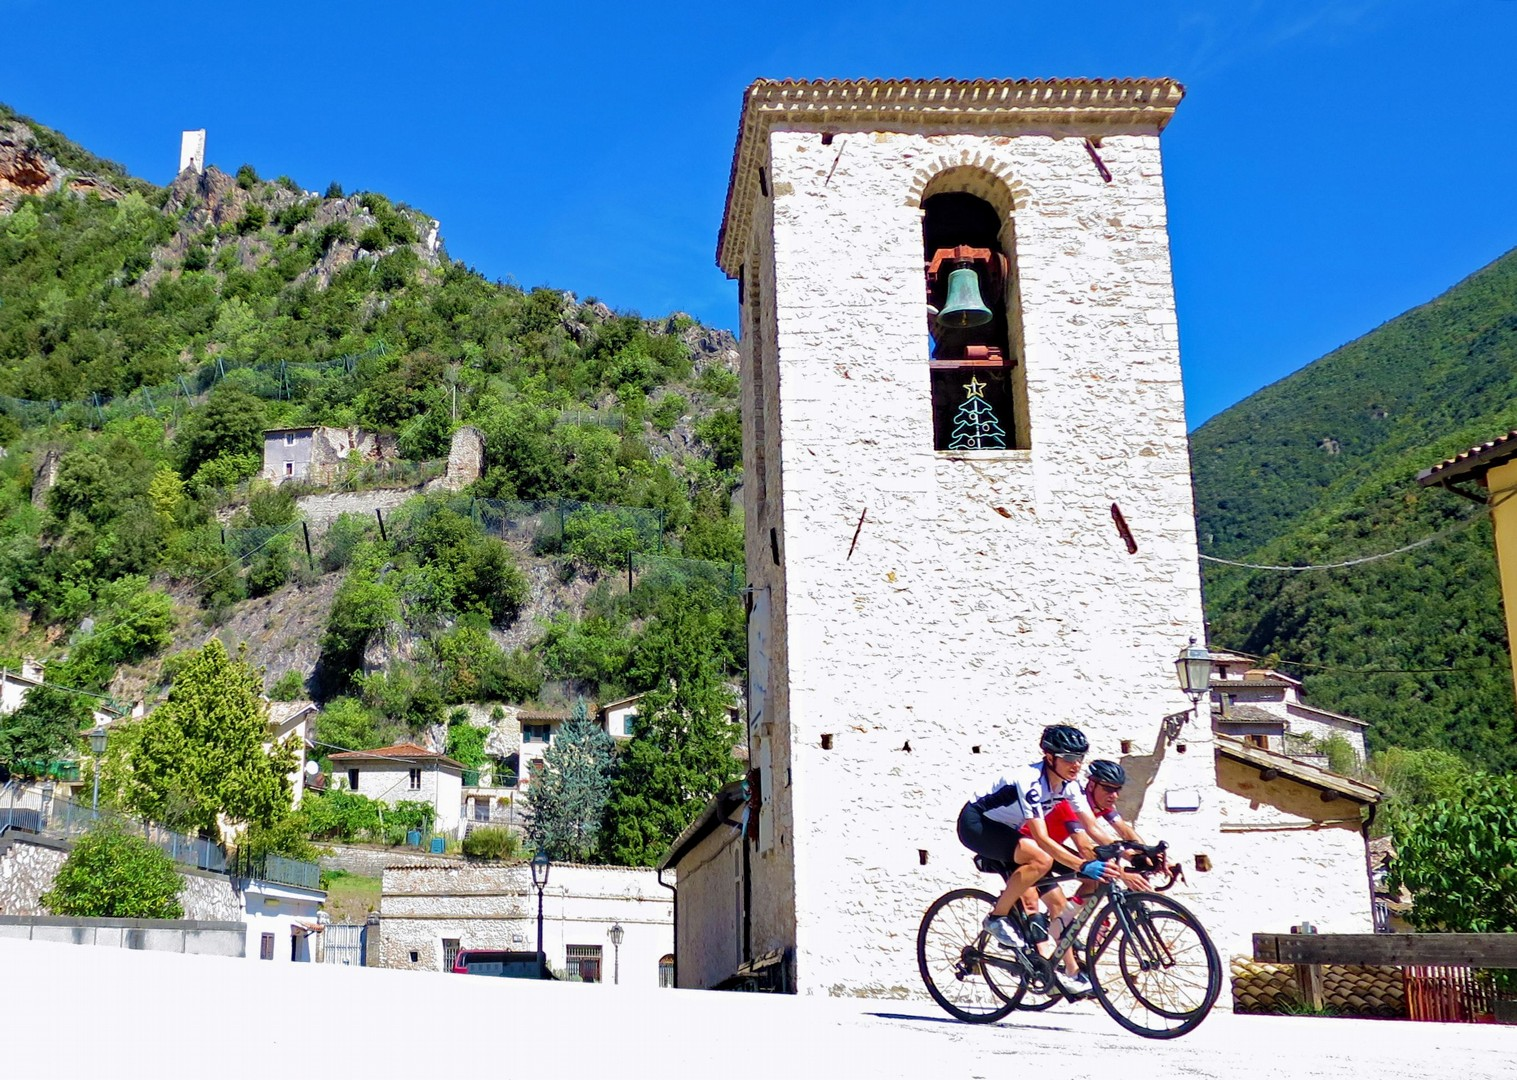 grand-traverse-guided-road-cycling-adventure.jpg - Italy - Grand Traverse - North to South - Guided Road Cycling Holiday (17 days) - Italia Road Cycling